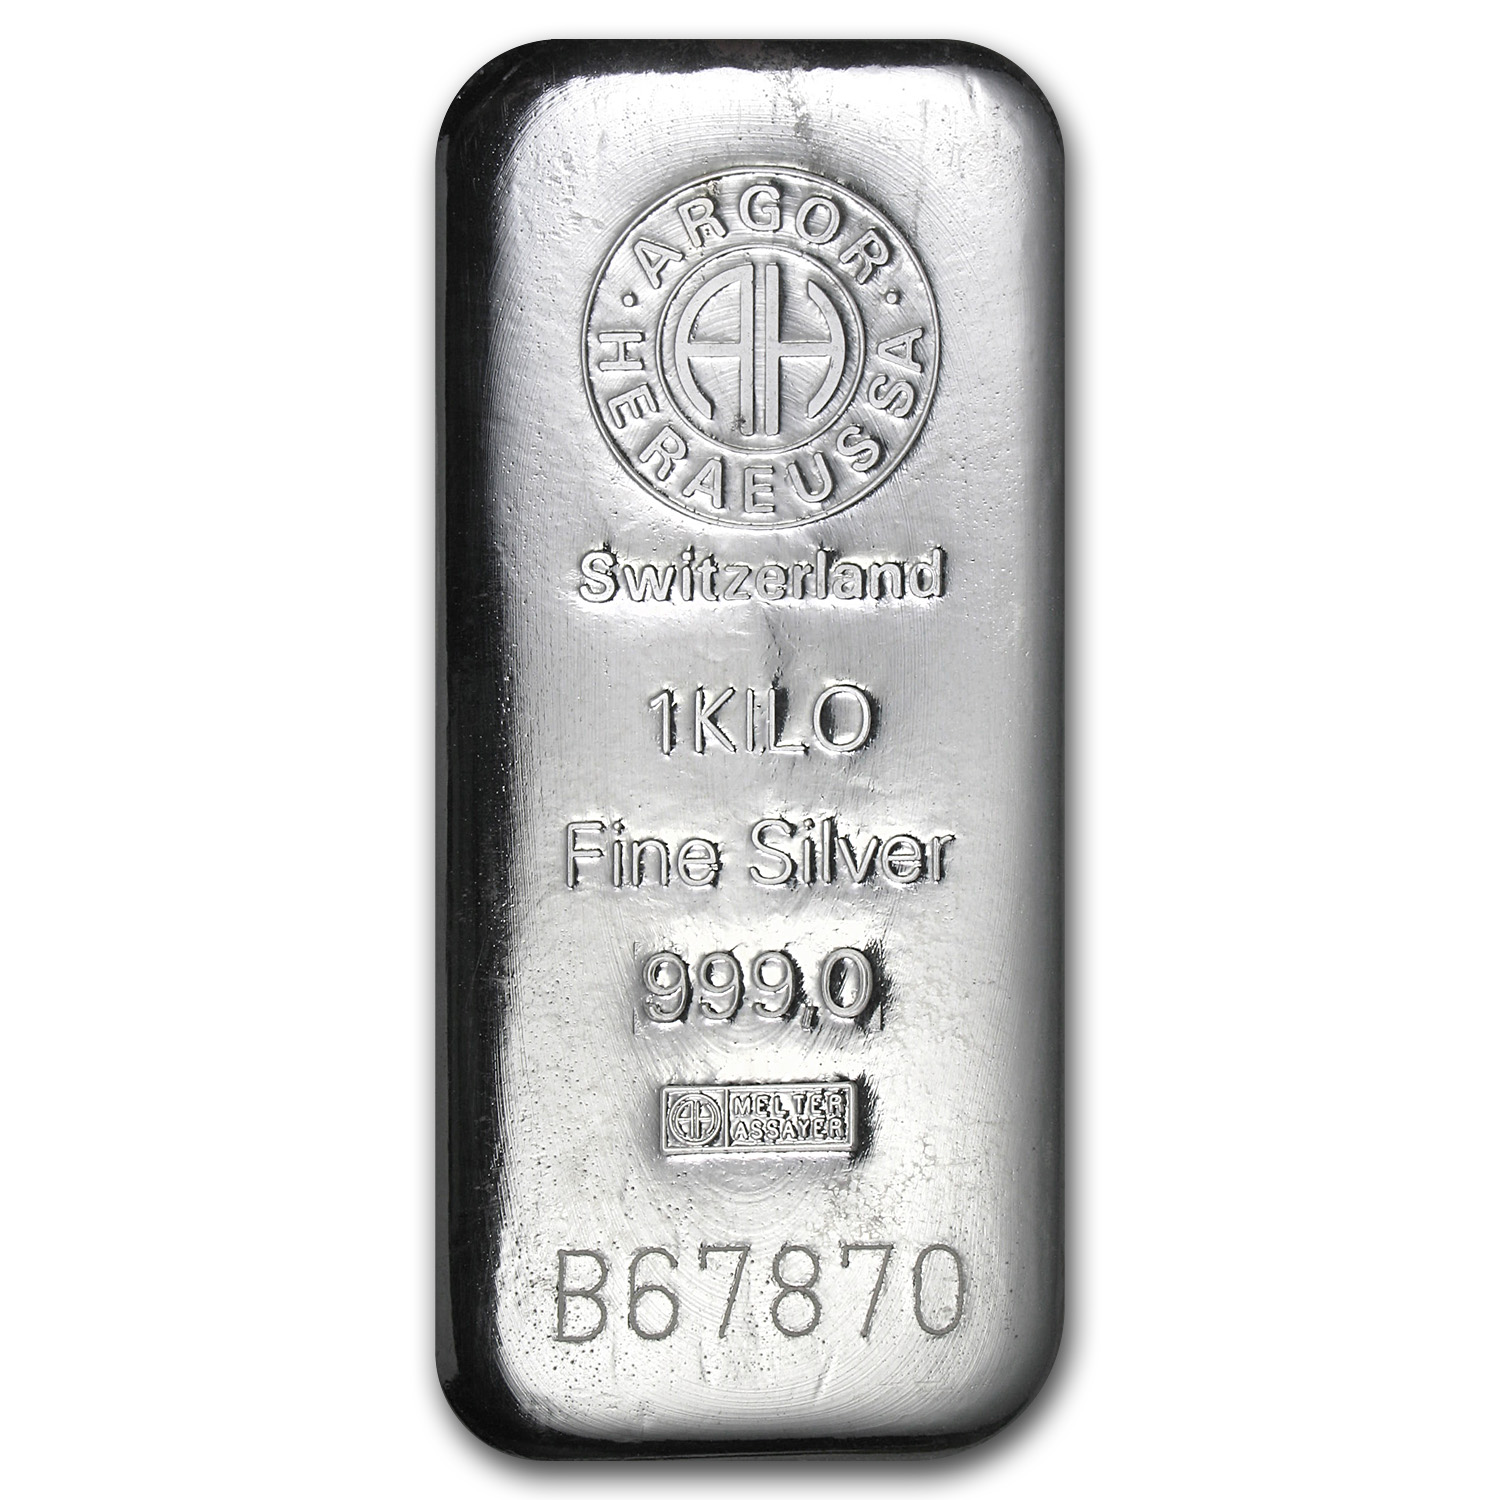 1 Kilo Silver Bars - Argor/Heraeus (Switzerland)